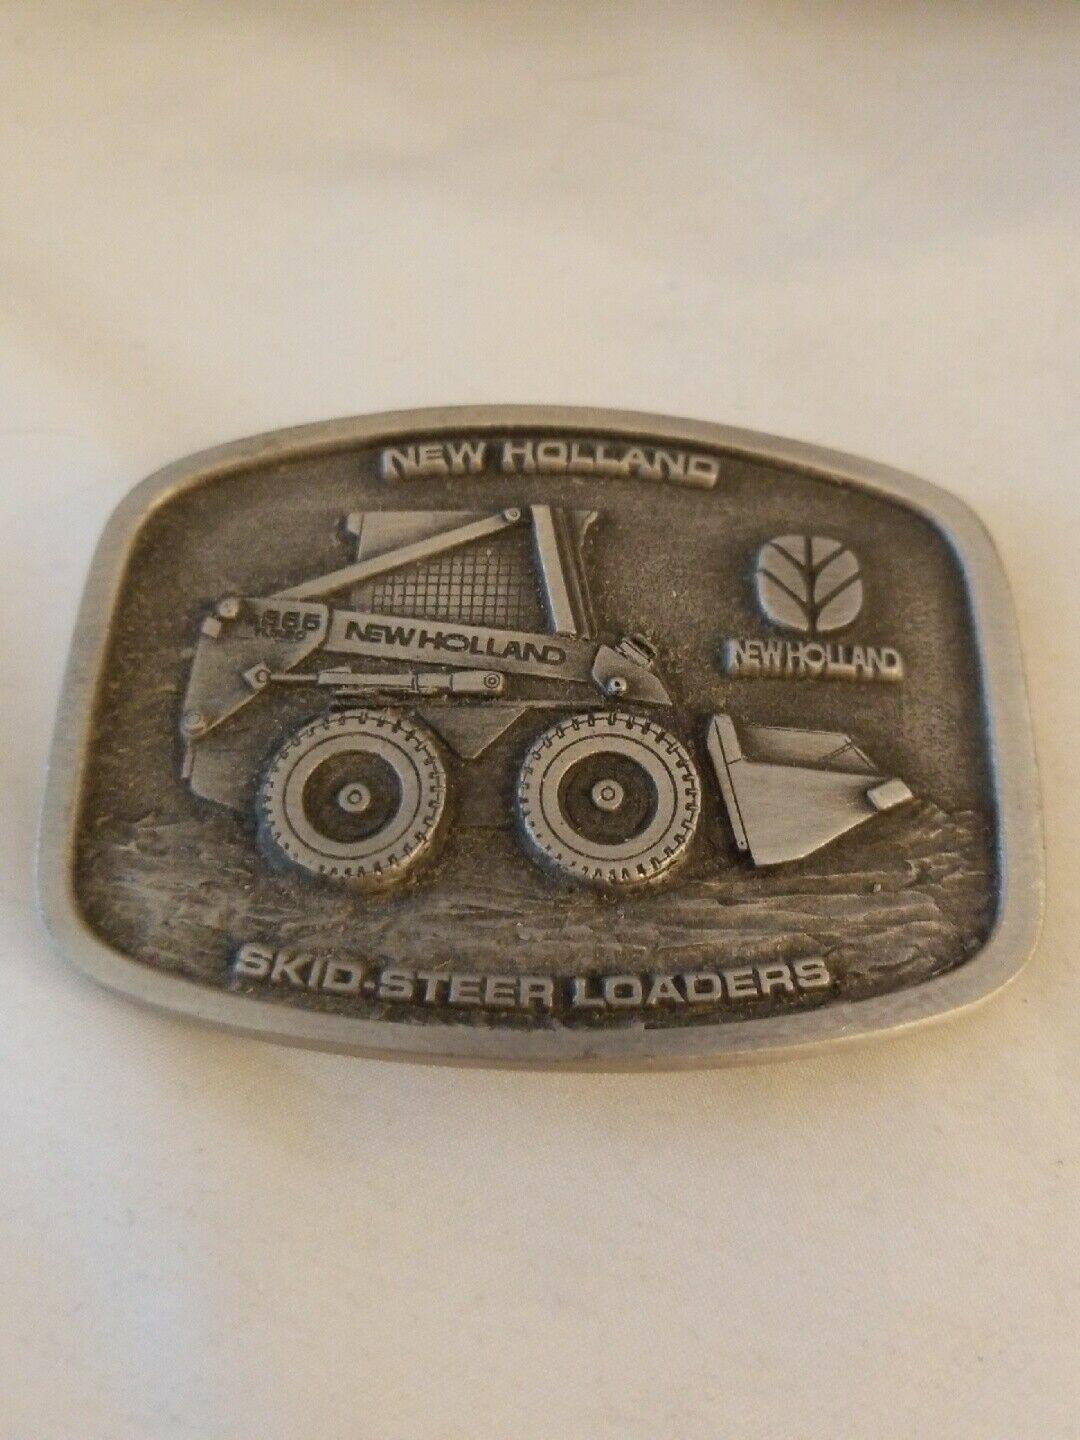 Primary image for New Holland Skid Steer Loaders Pewter Belt Buckle by Spec Cast Made in USA